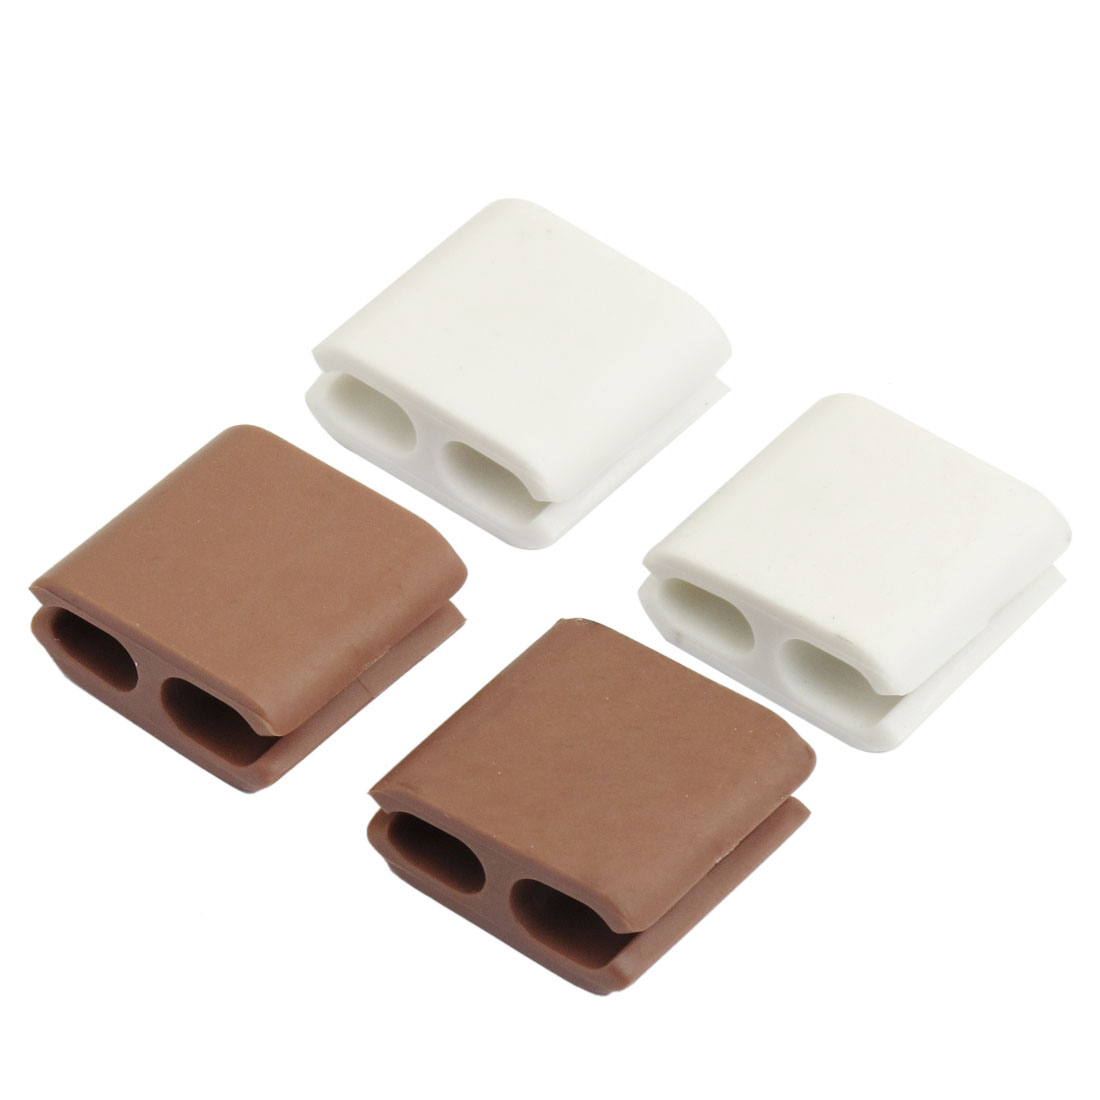 4 x Rubber Scattered Cord Cable Clip Organizer Fixer White Coffee Color